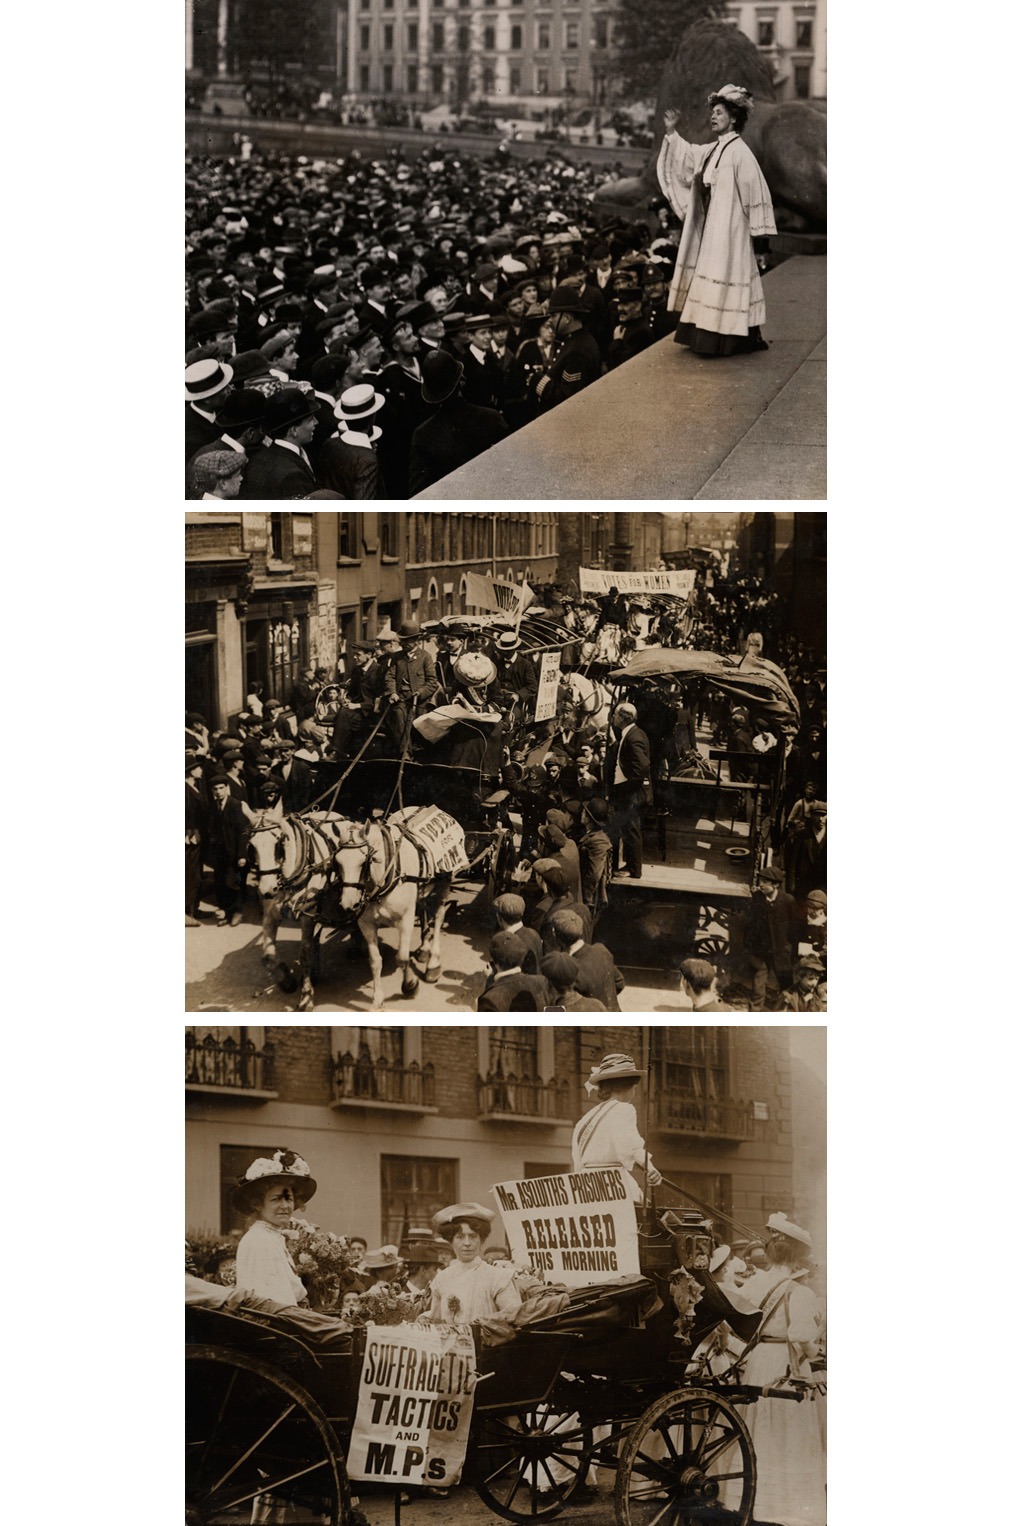 Emmeline Pankhurst speaks in Trafalgar Square, 13th October 1908; suffragette prisoners released from Holloway in a procession of WSPU carts, 31st July 1908; suffragettes Edith New and Mary Leigh in an open carriage after release from prison for breaking windows at 10 Downing Street, 22nd August 1908